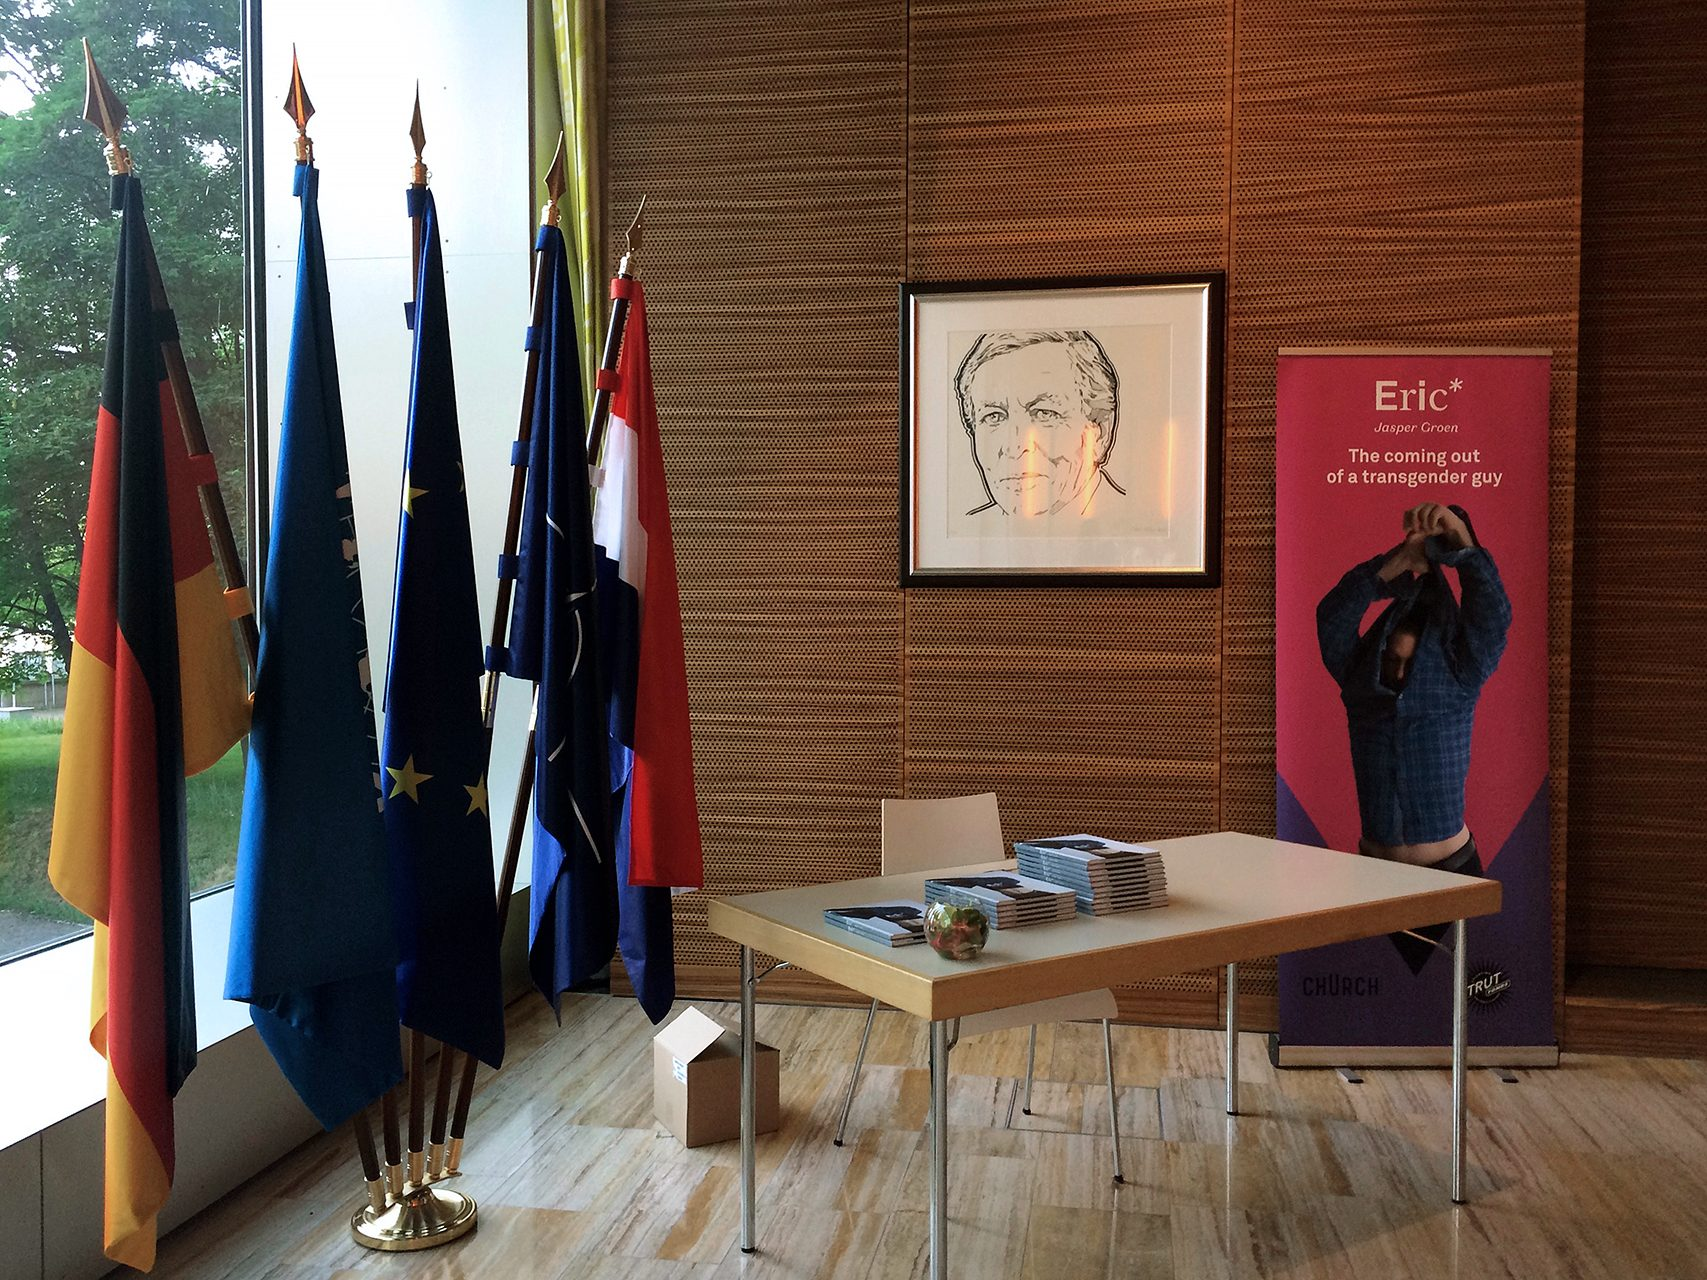 May 2018: book presentation 'Eric*' in the Royal Dutch embassy, Berlin.